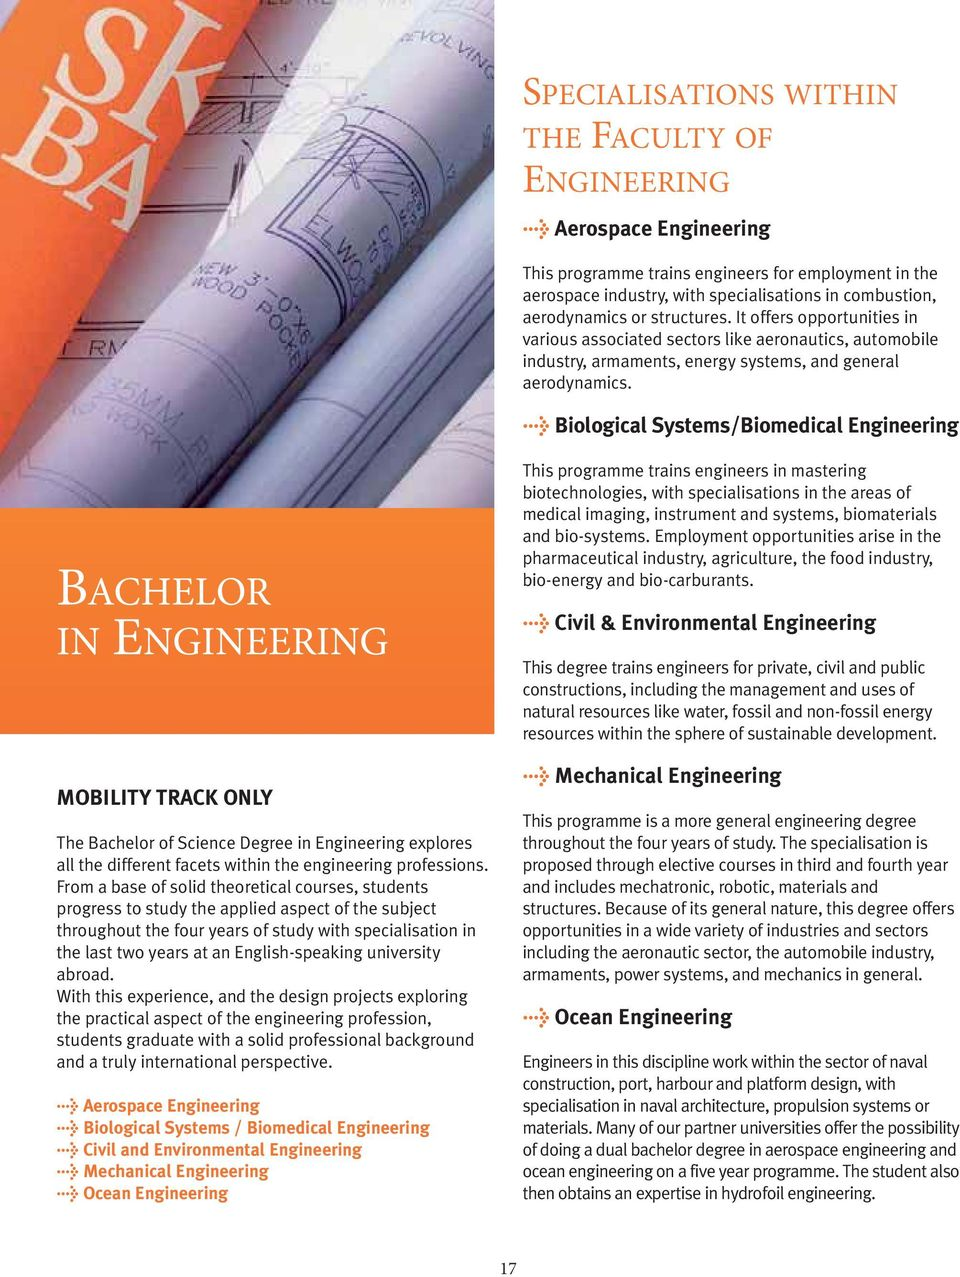 > Biological Systems/Biomedical Engineering BACHELOR IN ENGINEERING MOBILITY TRACK ONLY The Bachelor of Science Degree in Engineering explores all the different facets within the engineering